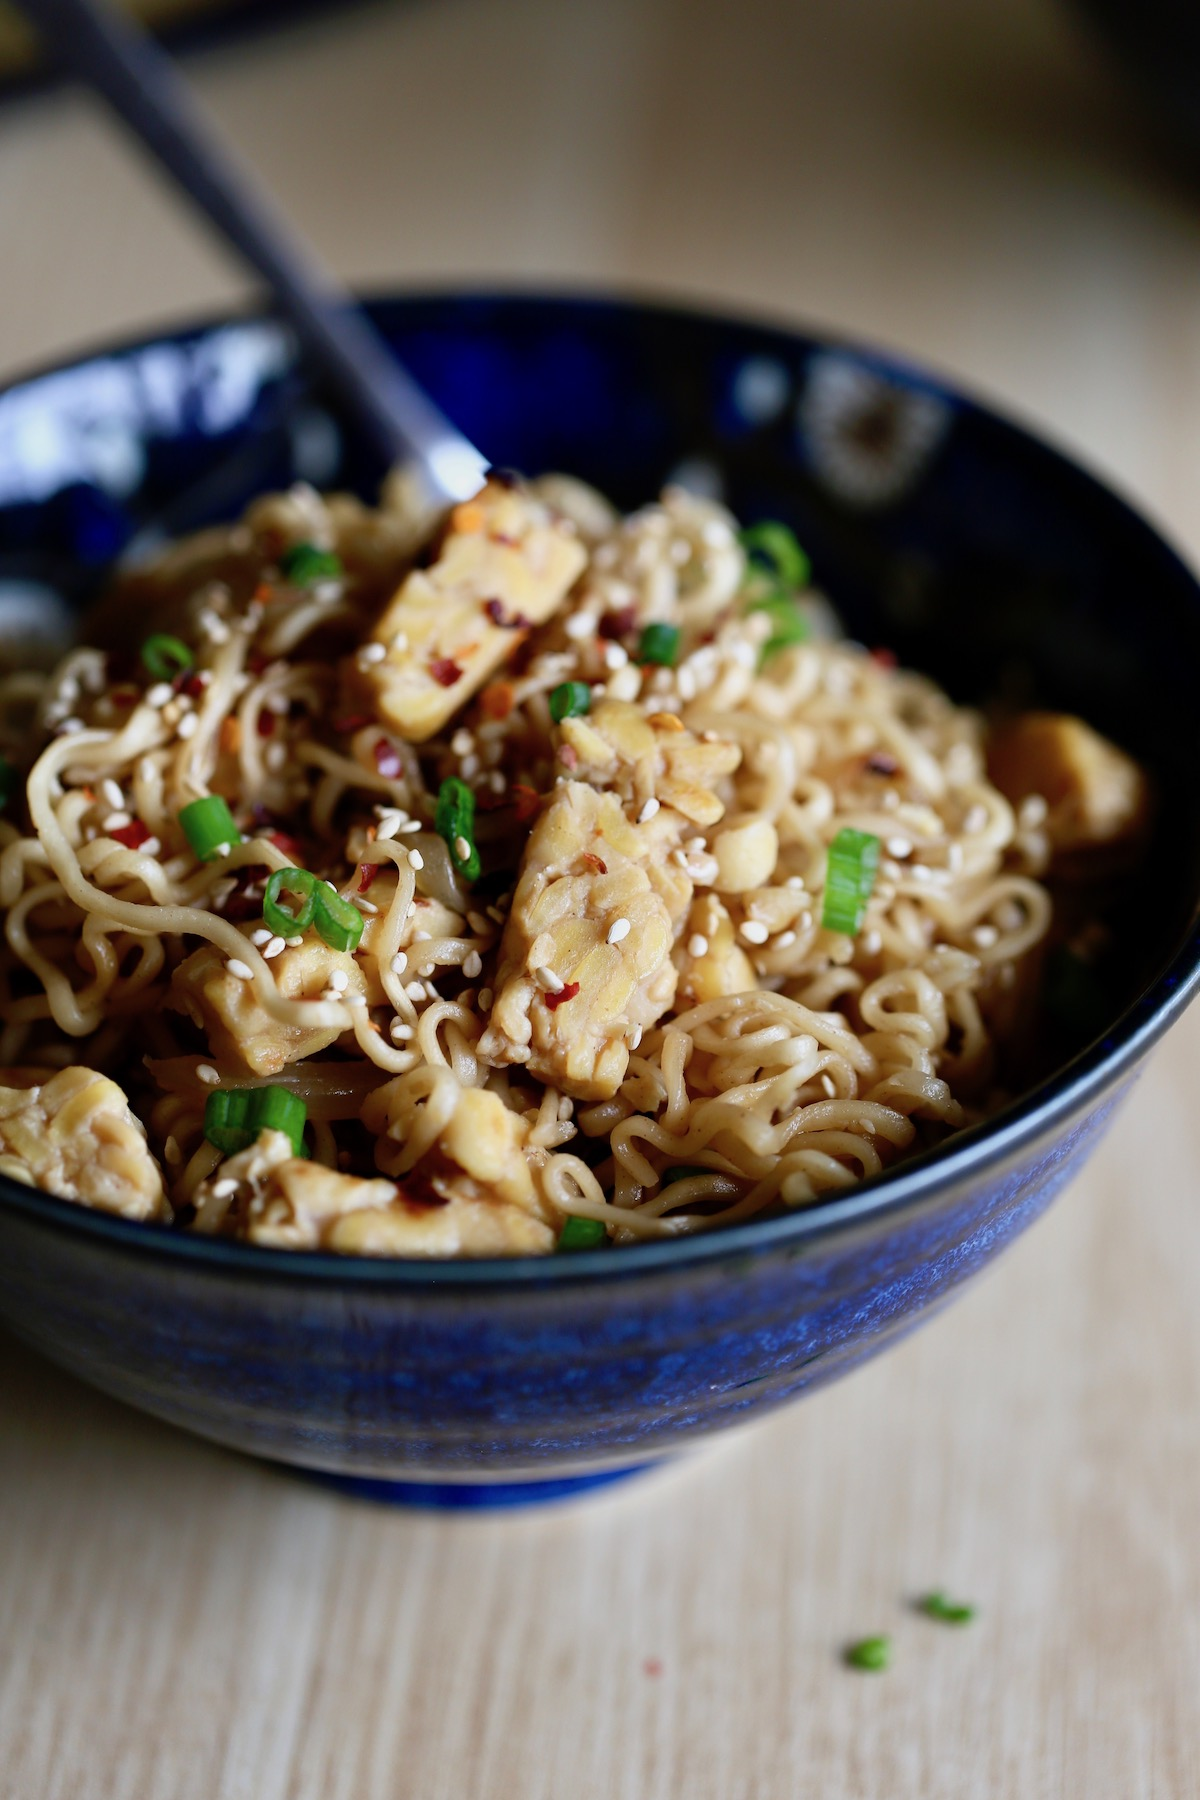 Quick Asian Ramen Noodles in a bowl topped with green onions and chili flakes